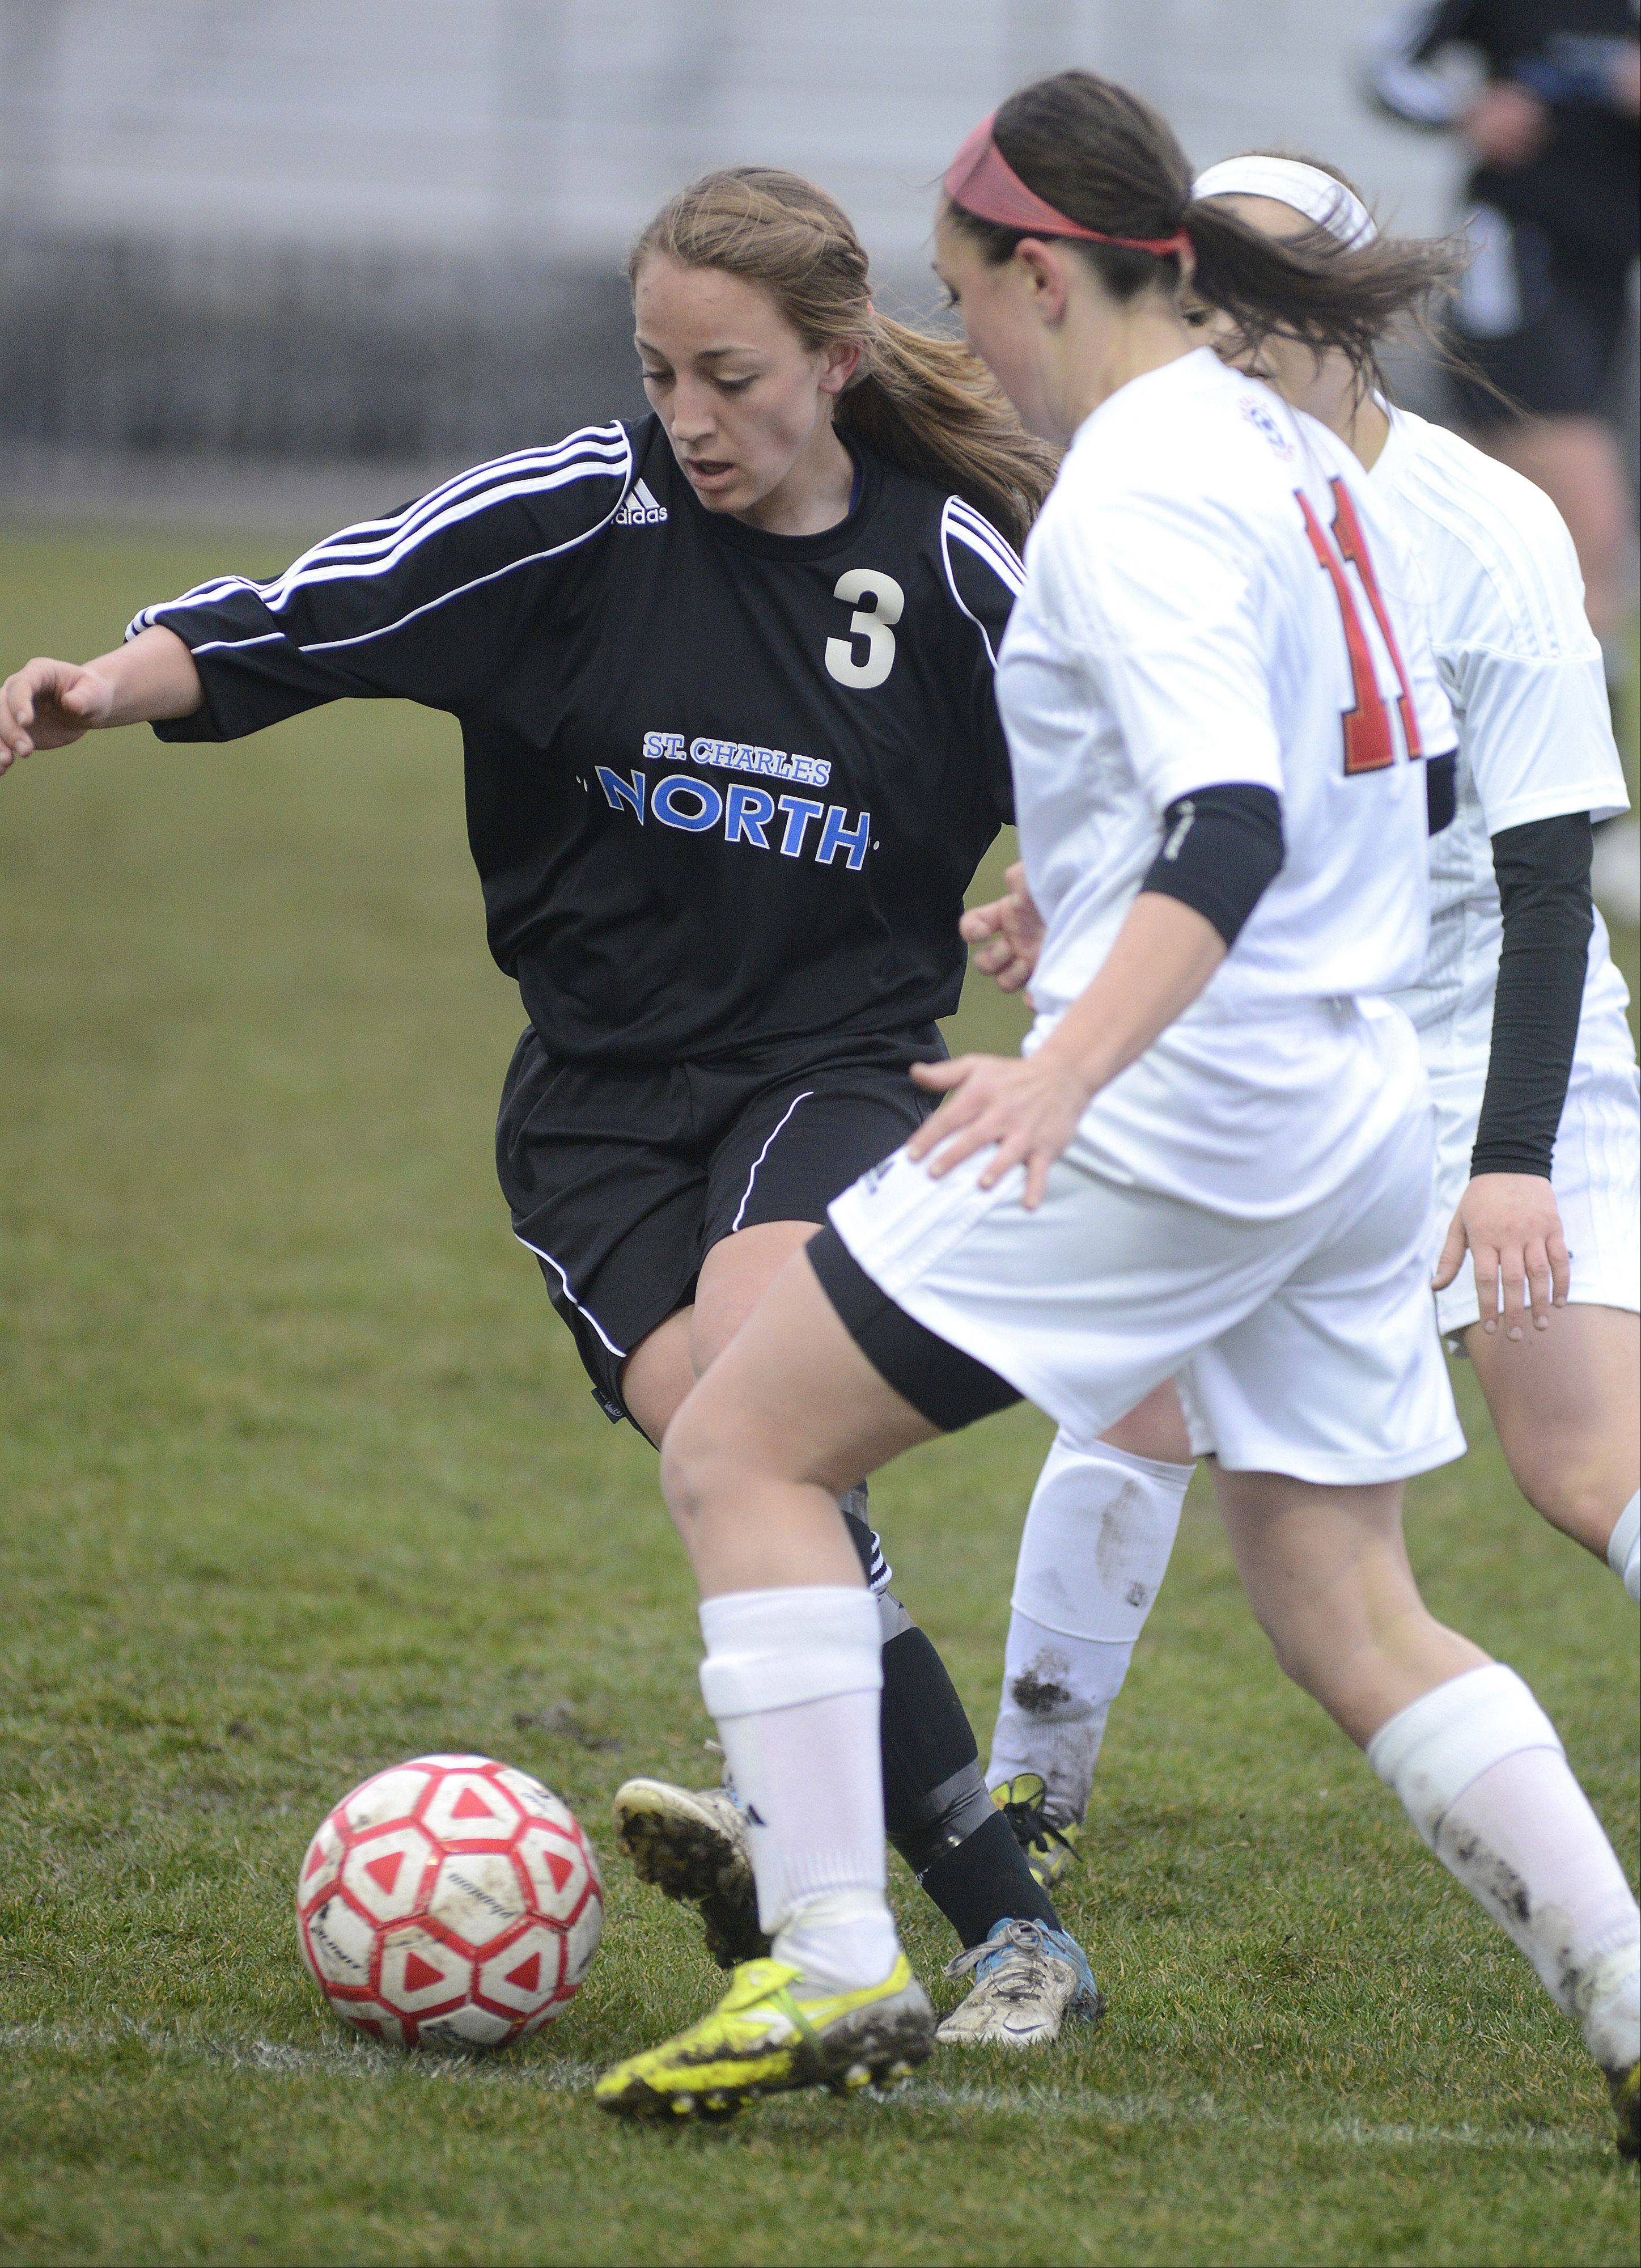 St. Charles North's Alex Gage and Batavia's Lindsay Spears battle for the ball in the first half on Thursday, April 11.